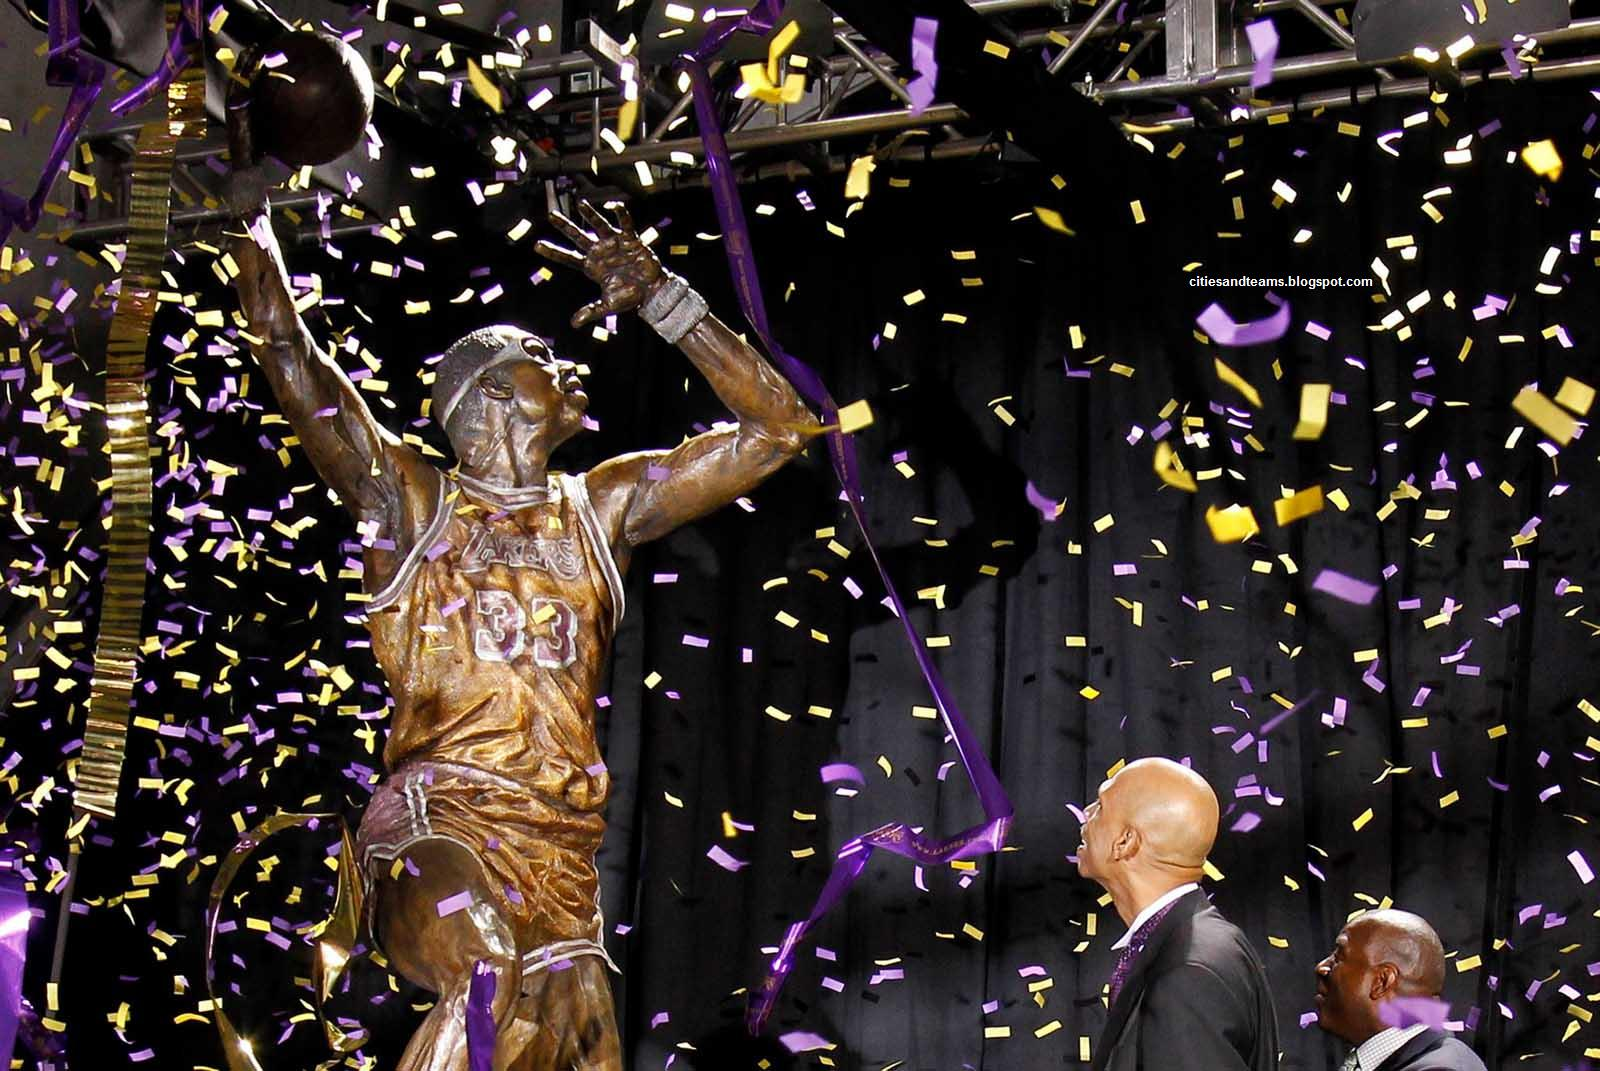 http://1.bp.blogspot.com/-r8oGy2mHxjM/ULEmurhqt5I/AAAAAAAAId4/ImG0zThGRwM/s1600/Kareem_Abdul_Jabbar_With_His_Bronze_Statue_Legend_Of_Los_Angeles_Lakers_NBA_Hd_Desktop_Wallpaper_citiesandteams.blogspot.com.jpg